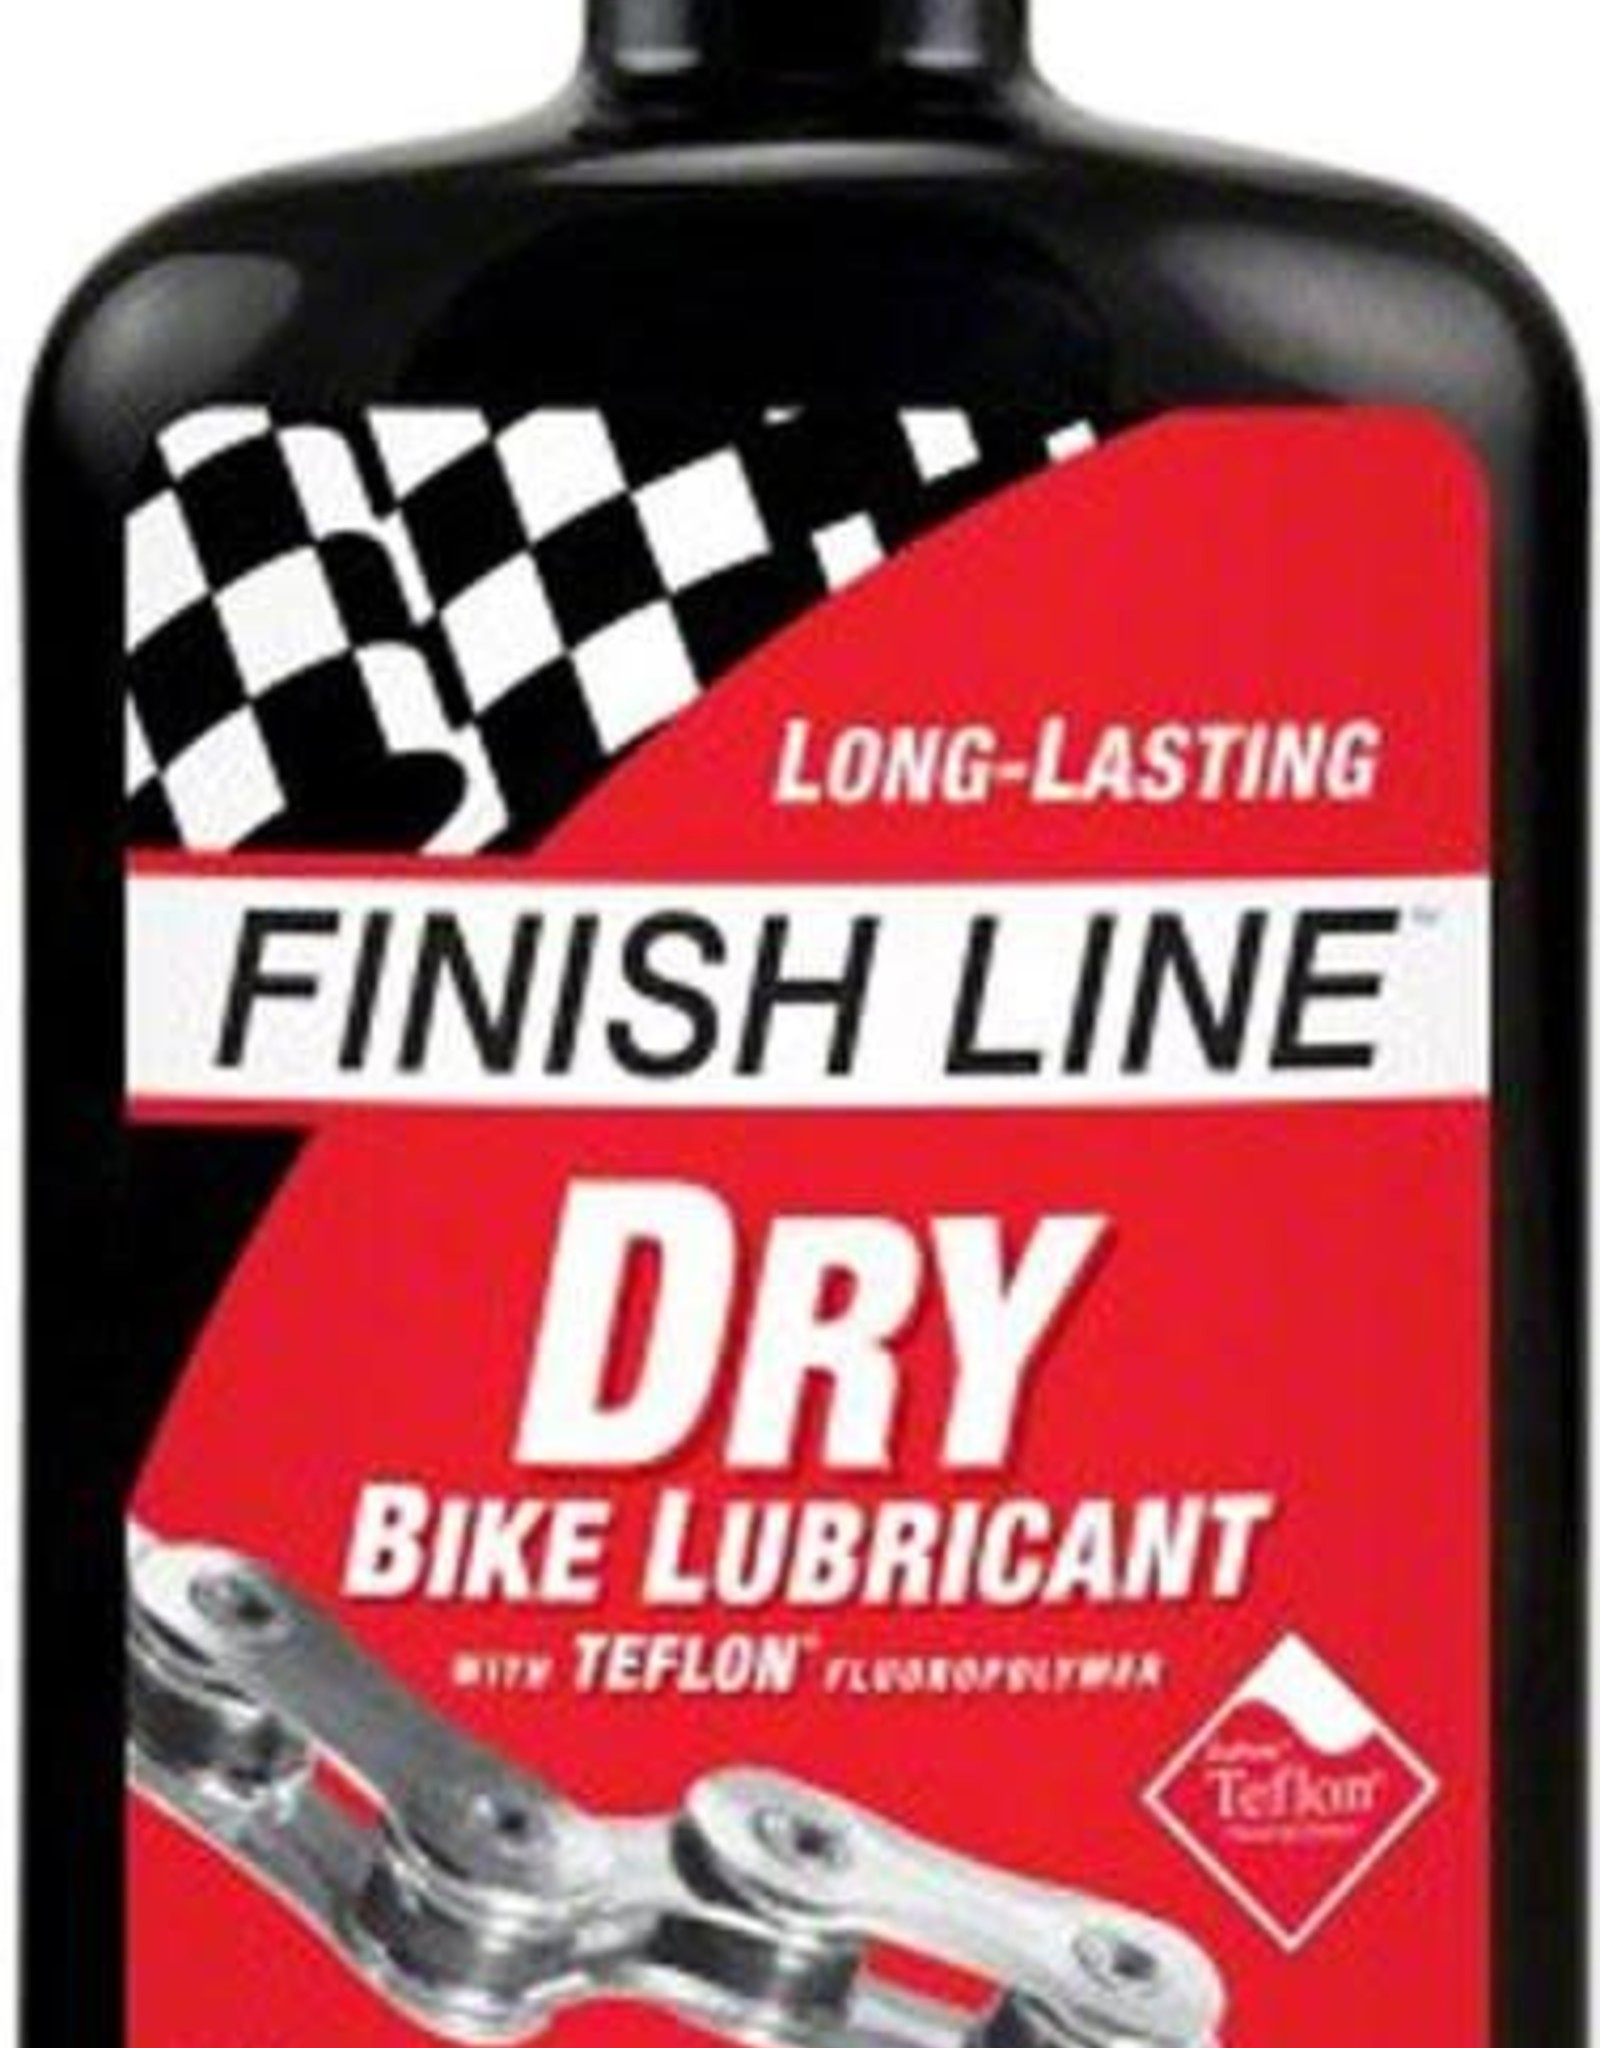 Finish Line Dry Lube with Teflon, Red/Black 118mL (4oz), Drip